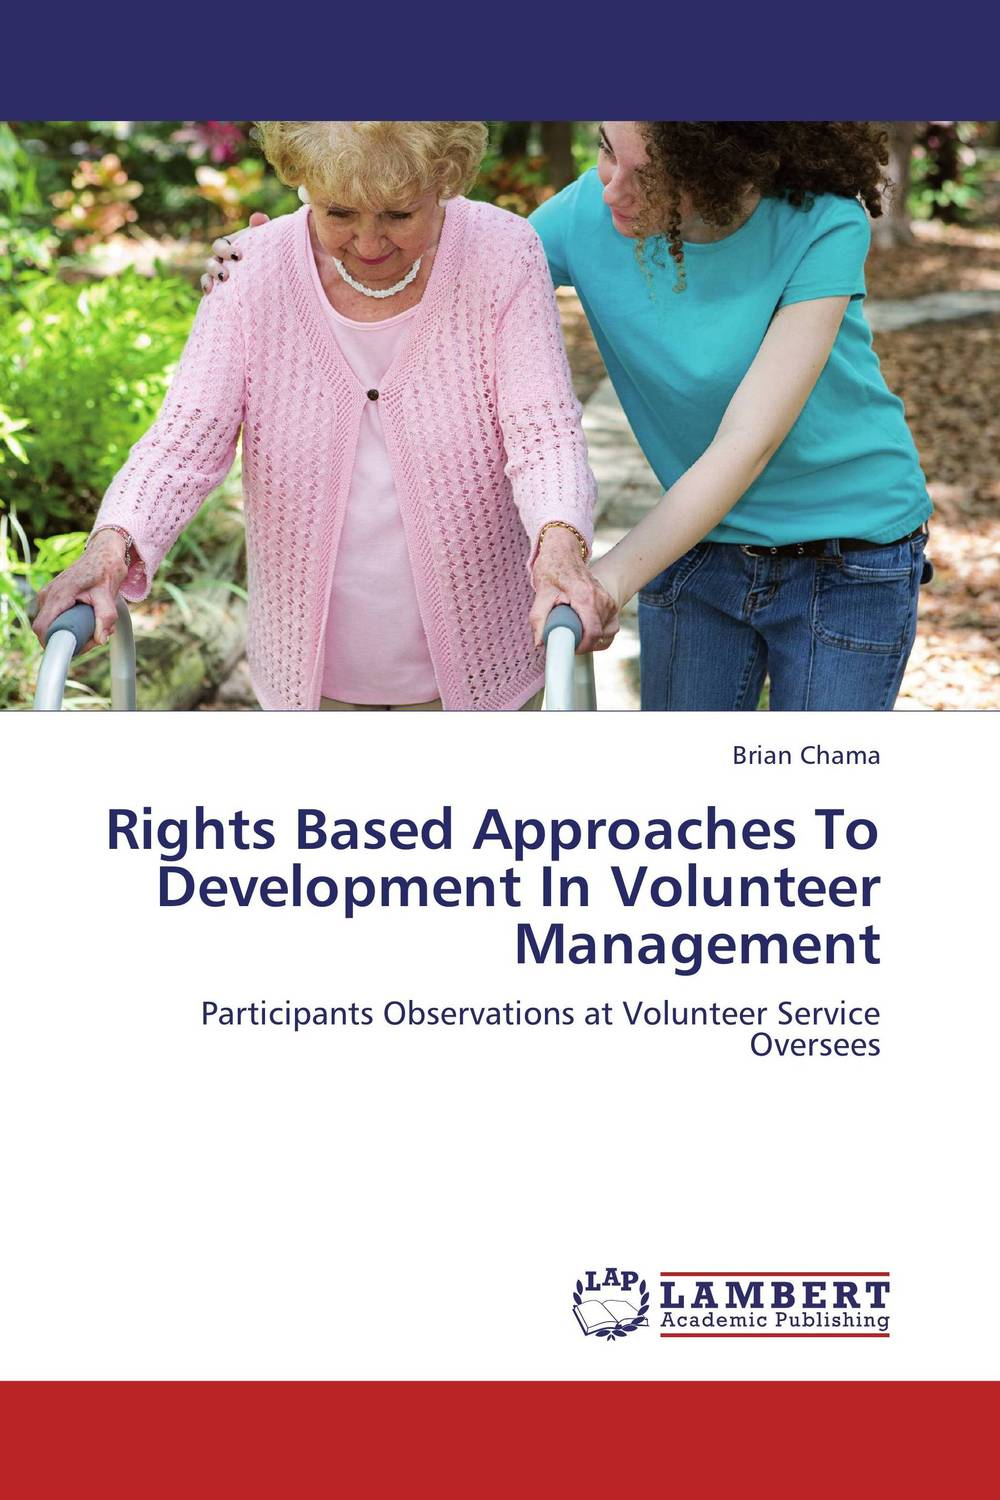 evaluation of voluntourism essay View and download definition essays examples also discover topics, titles, outlines, thesis statements, and conclusions for your definition essay.